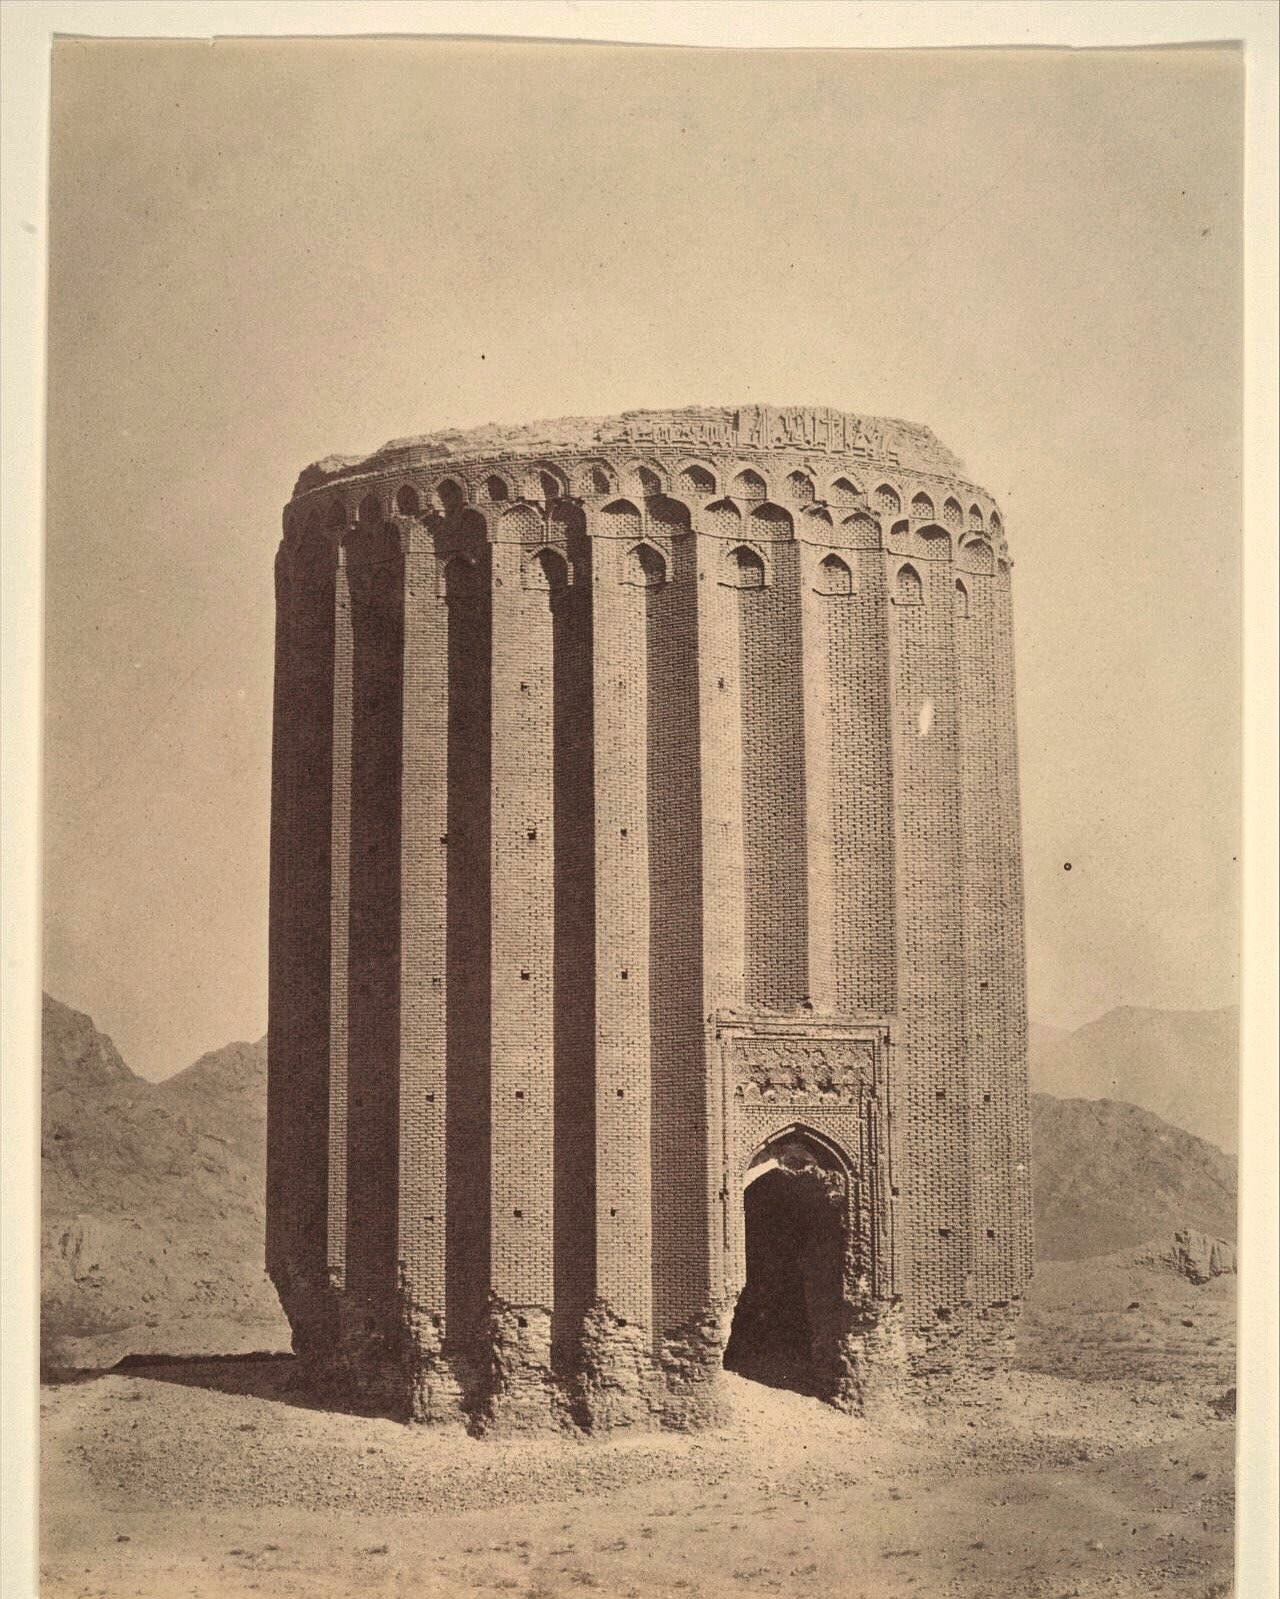 The 12th Century Tower of Tughrul, Rey, northern Iran